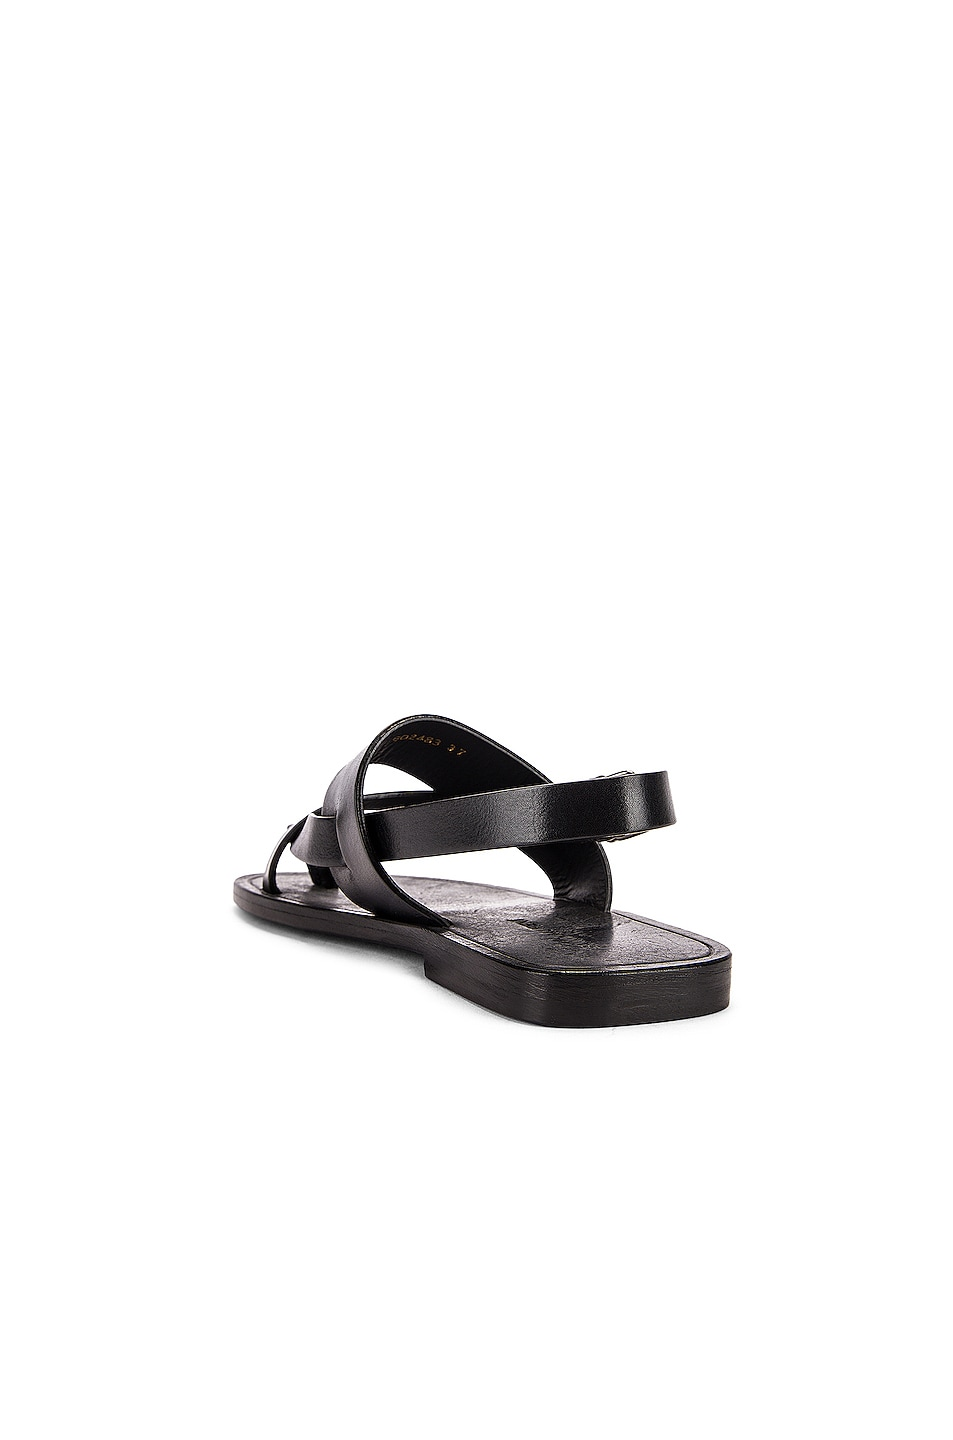 Image 3 of Saint Laurent Culver Buckle Sandals in Black